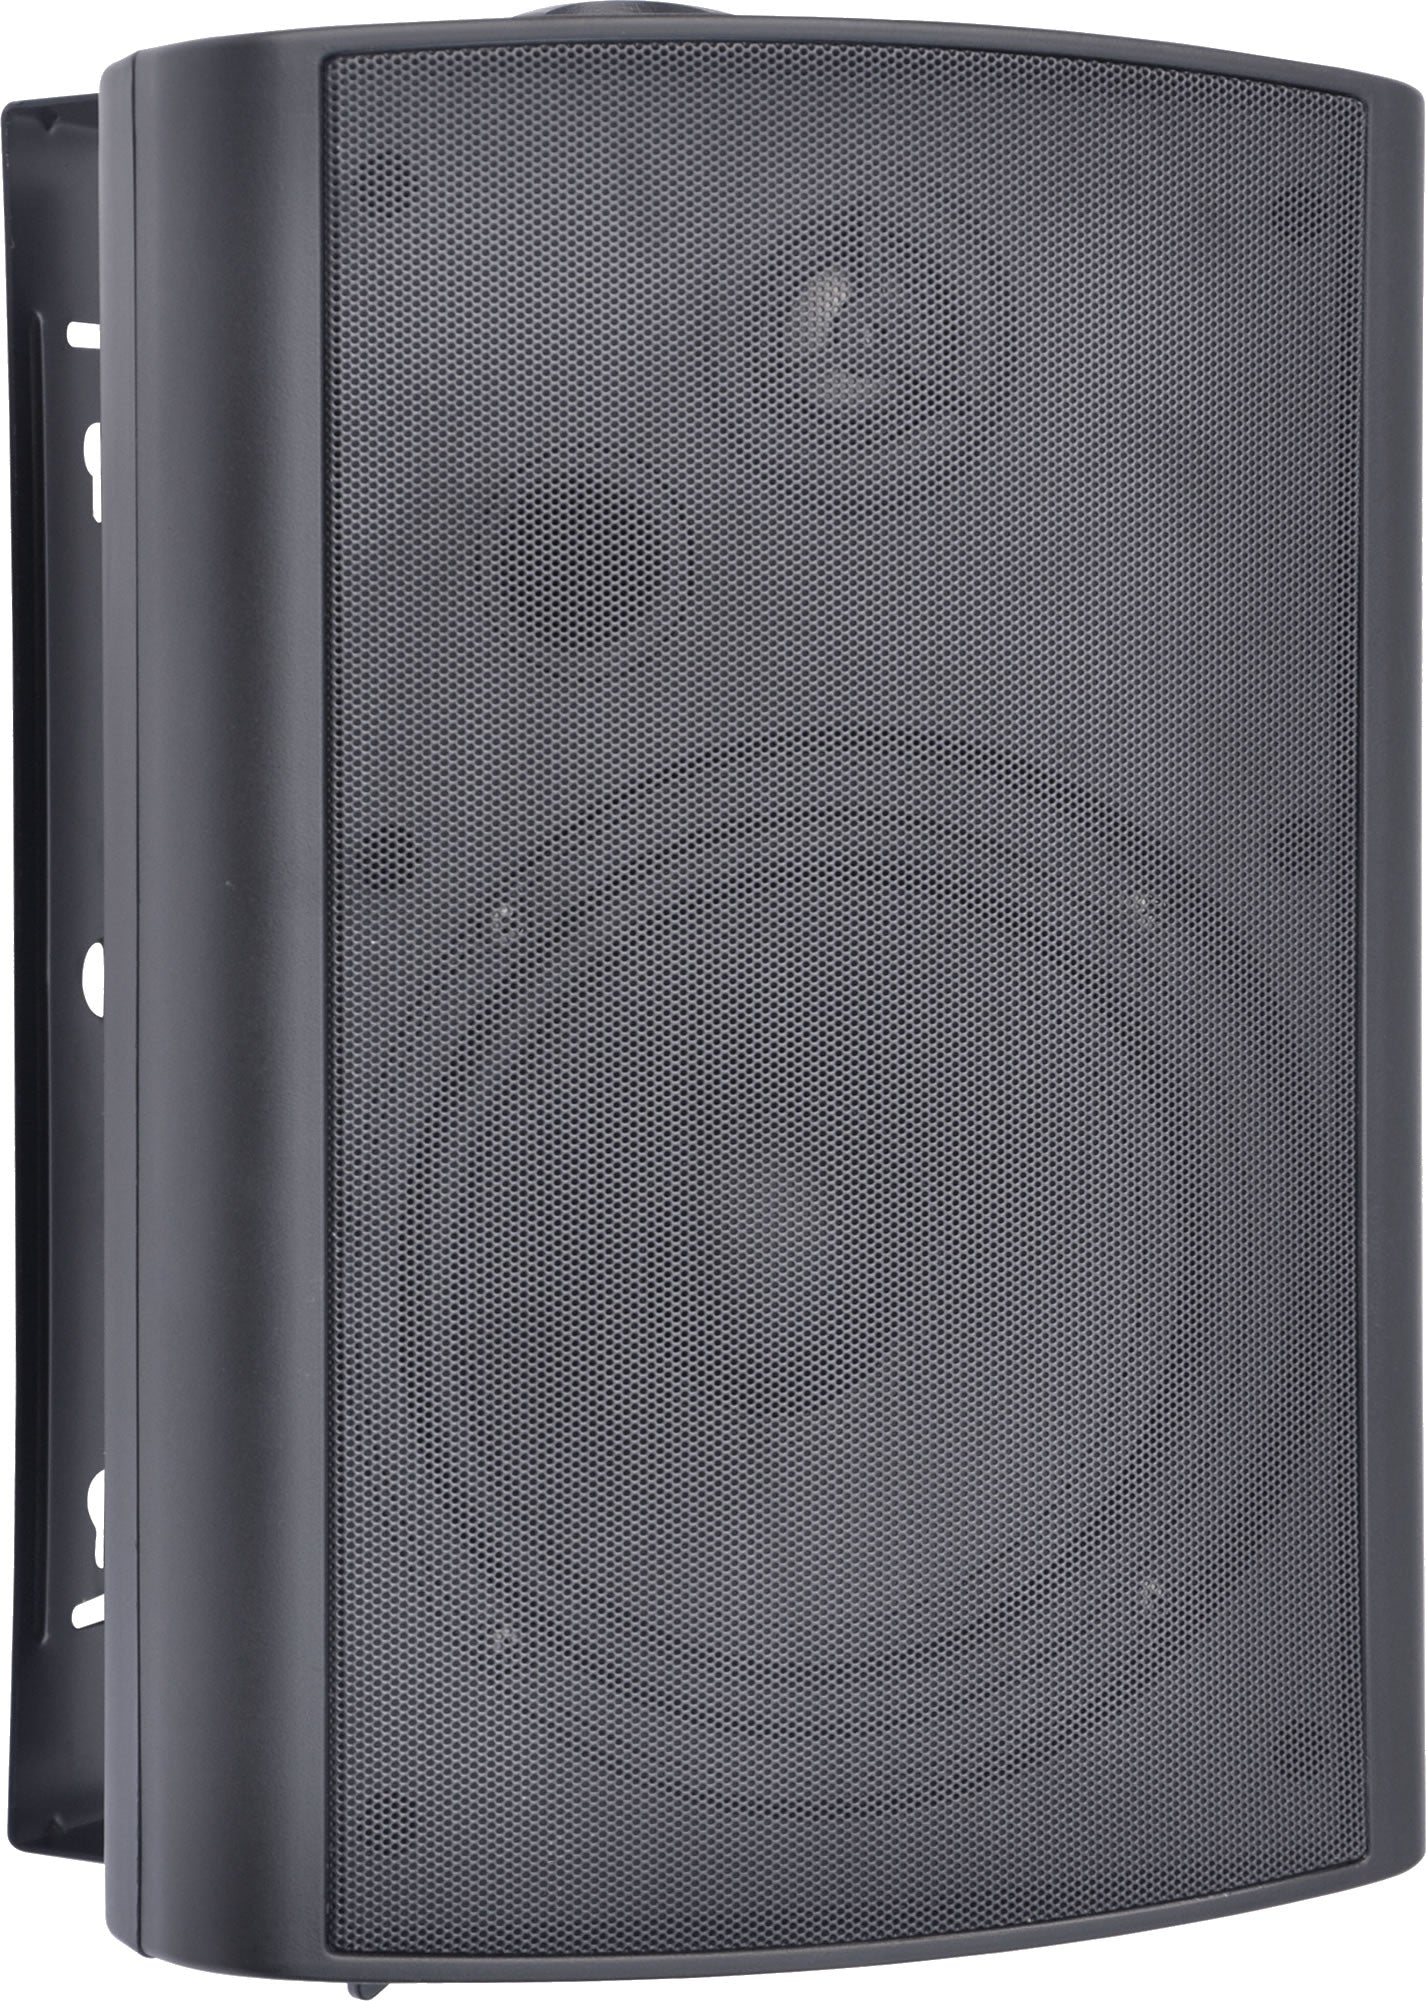 "89-8406B 6.5"" 2-Way Mini Box Speaker with Poly Tweeter - Black"